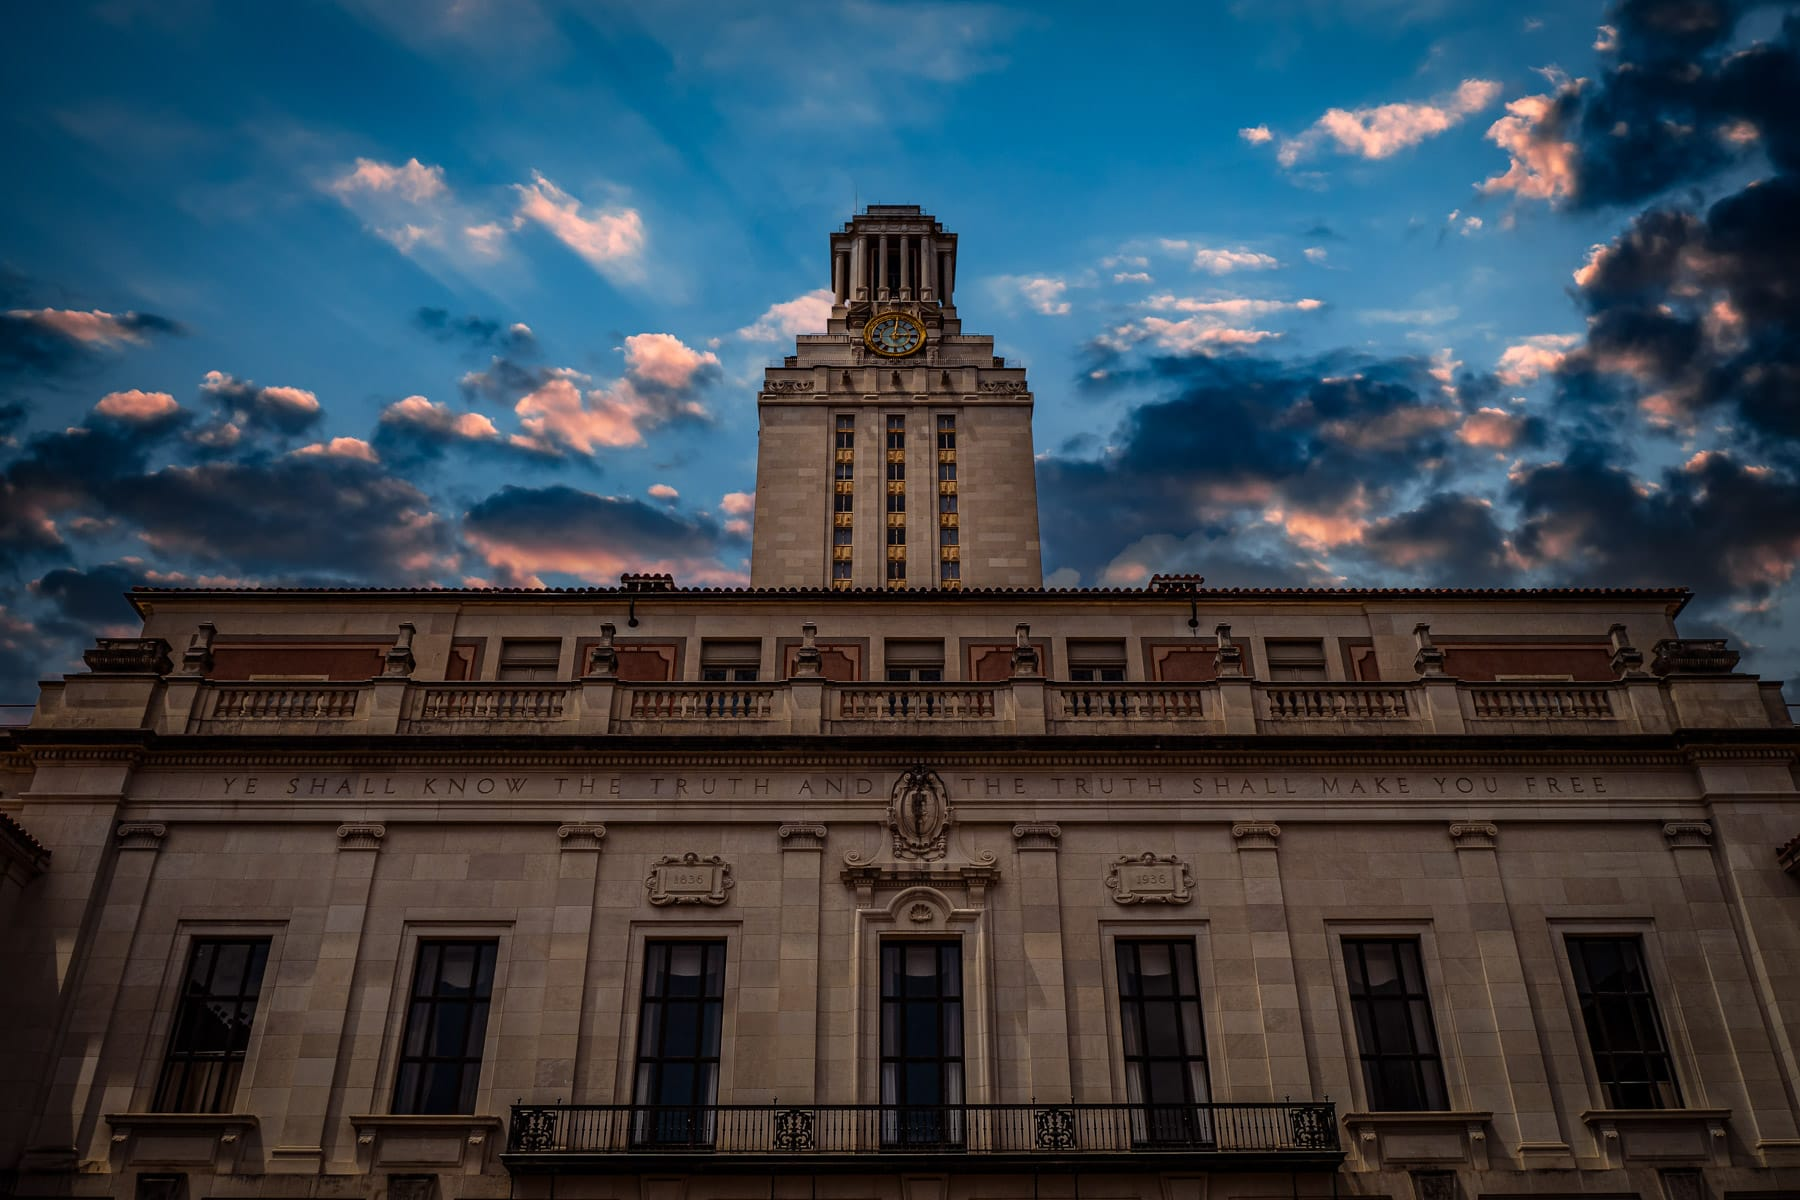 The Main Building (UT Tower) at the University of Texas reaches into the evening sky over Austin.